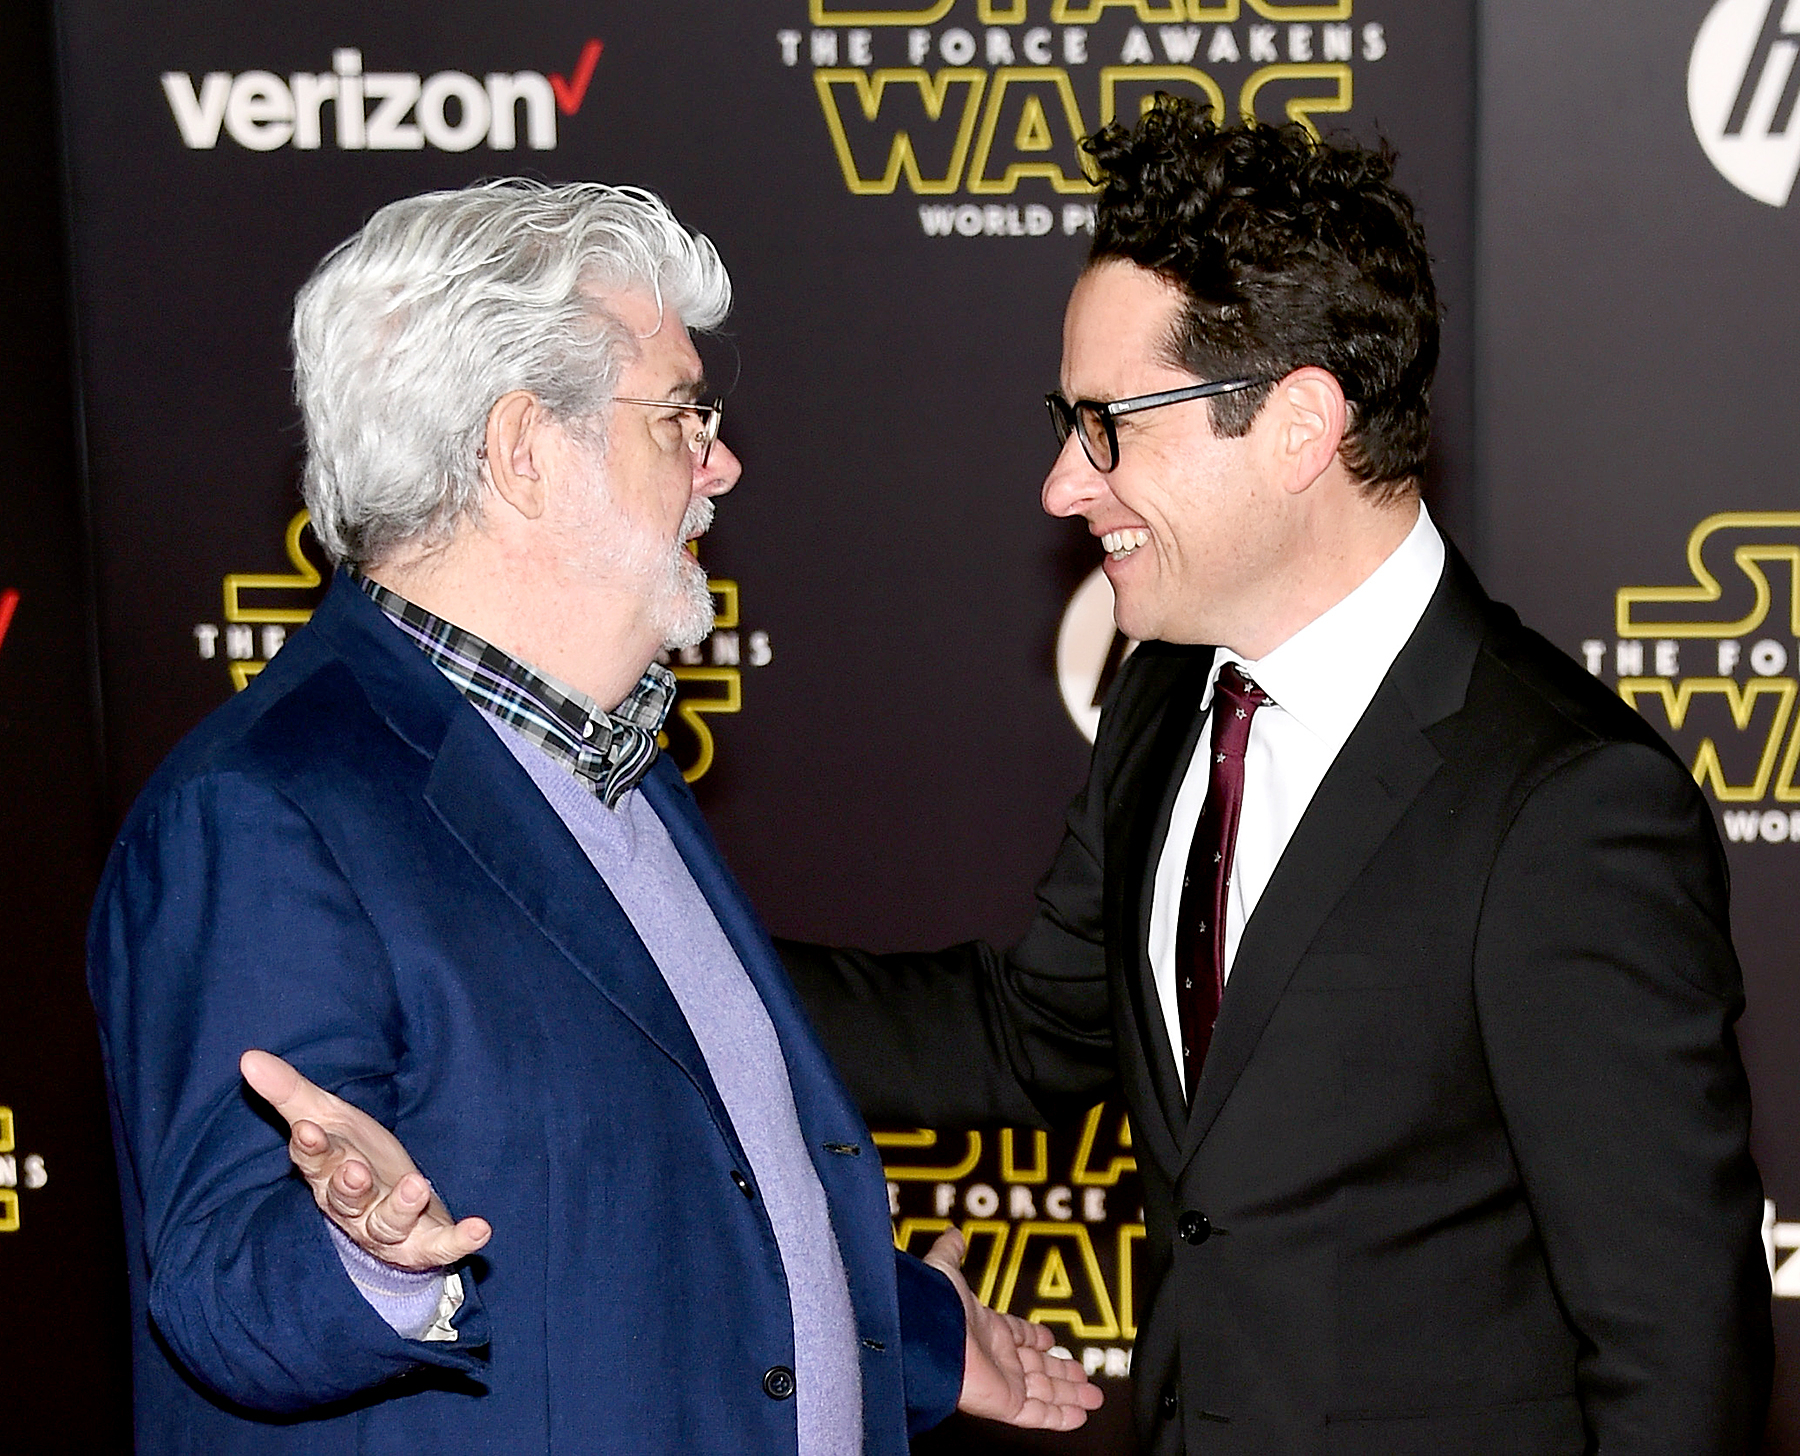 Filmmaker George Lucas and writer-director J.J. Abrams attend the premiere of Walt Disney Pictures and Lucasfilm's Star Wars: The Force Awakens.